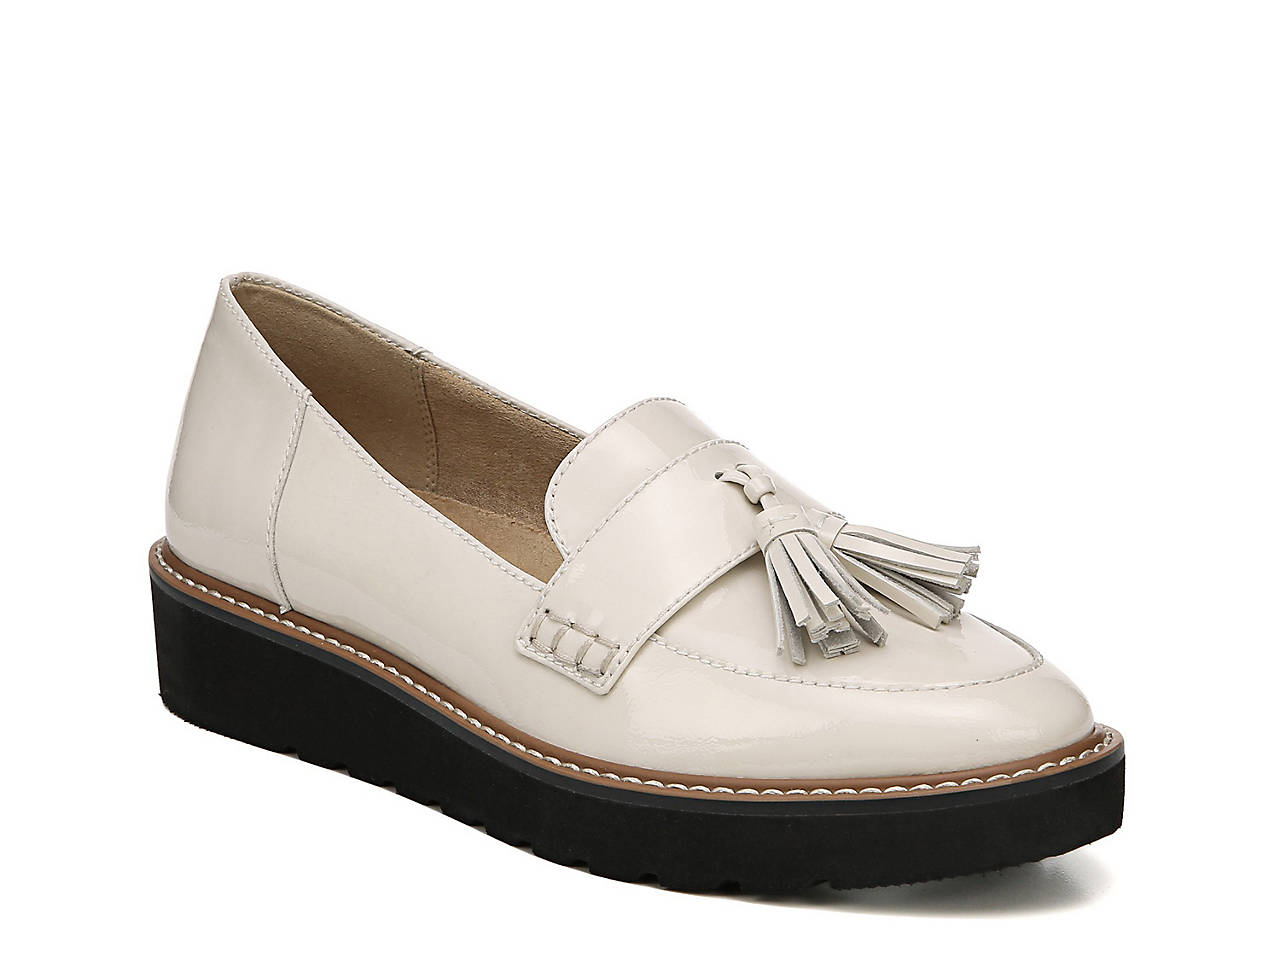 adc9493a0dc Naturalizer August Wedge Loafer Women s Shoes